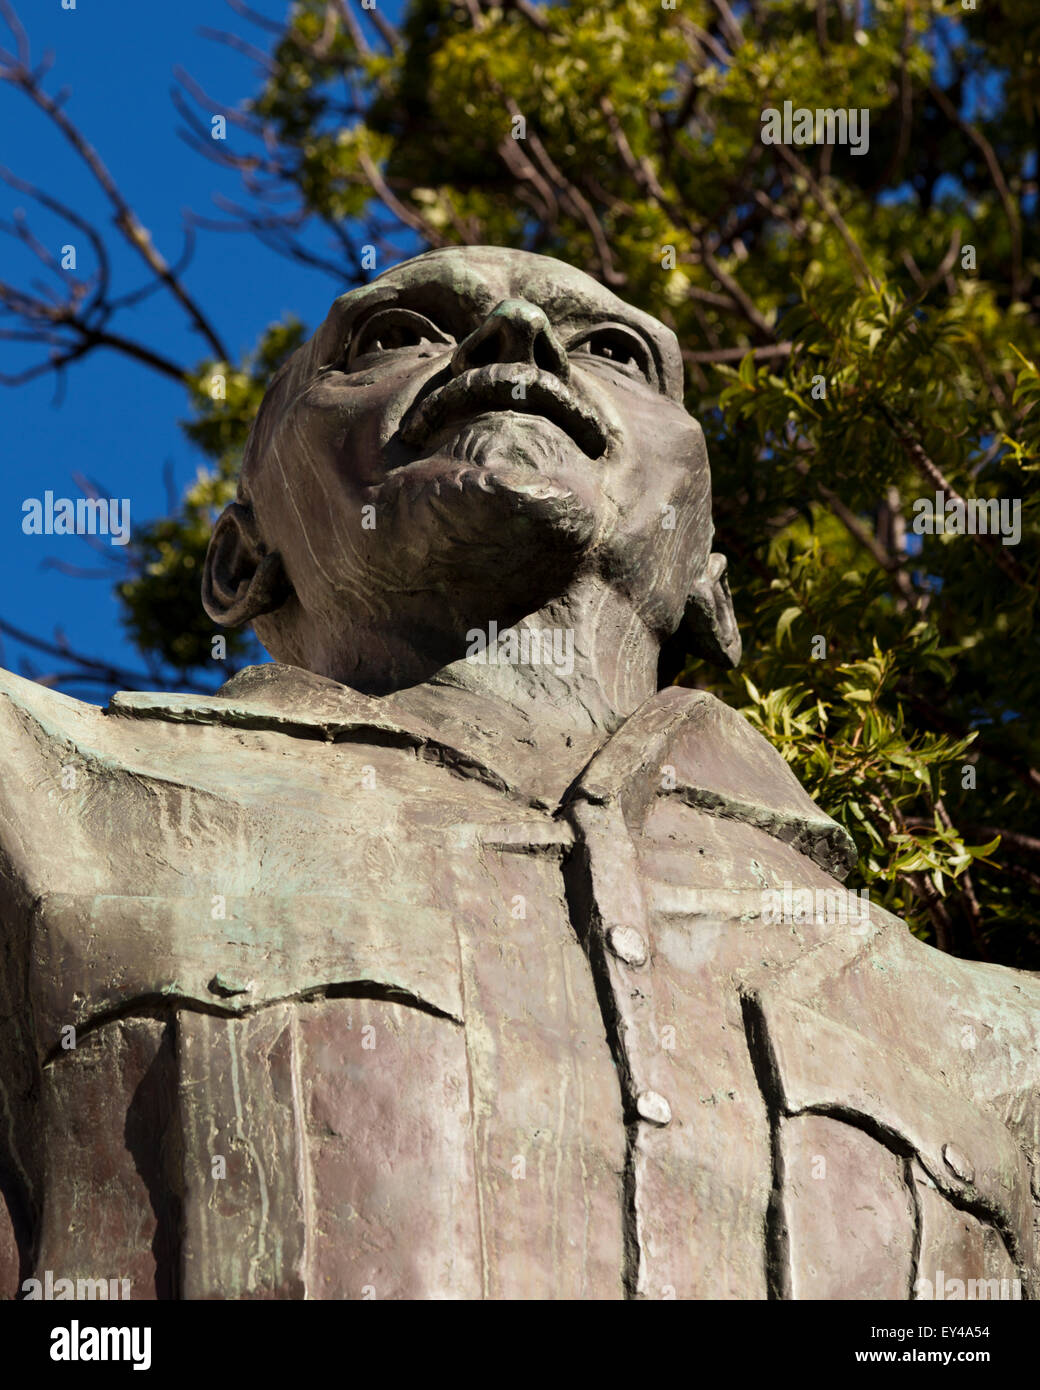 Statue of Jan Smuts Company's Park Cape Town South Africa - Stock Image